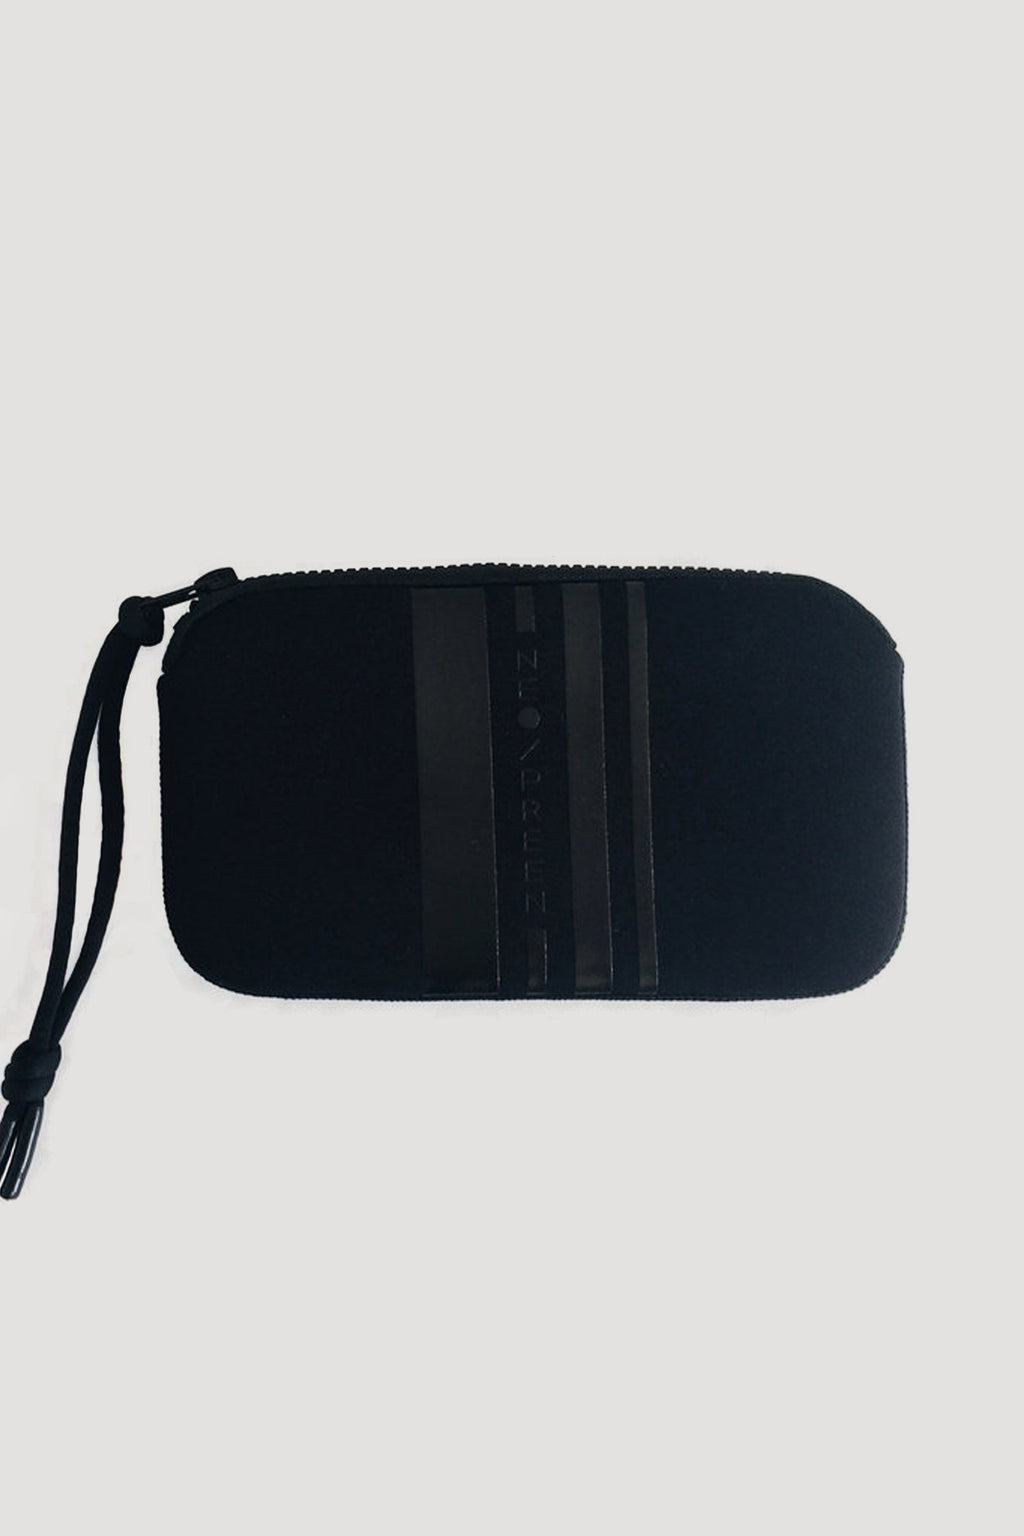 NEO/PREEN Mini Clutch - Midnight from Active Truth™